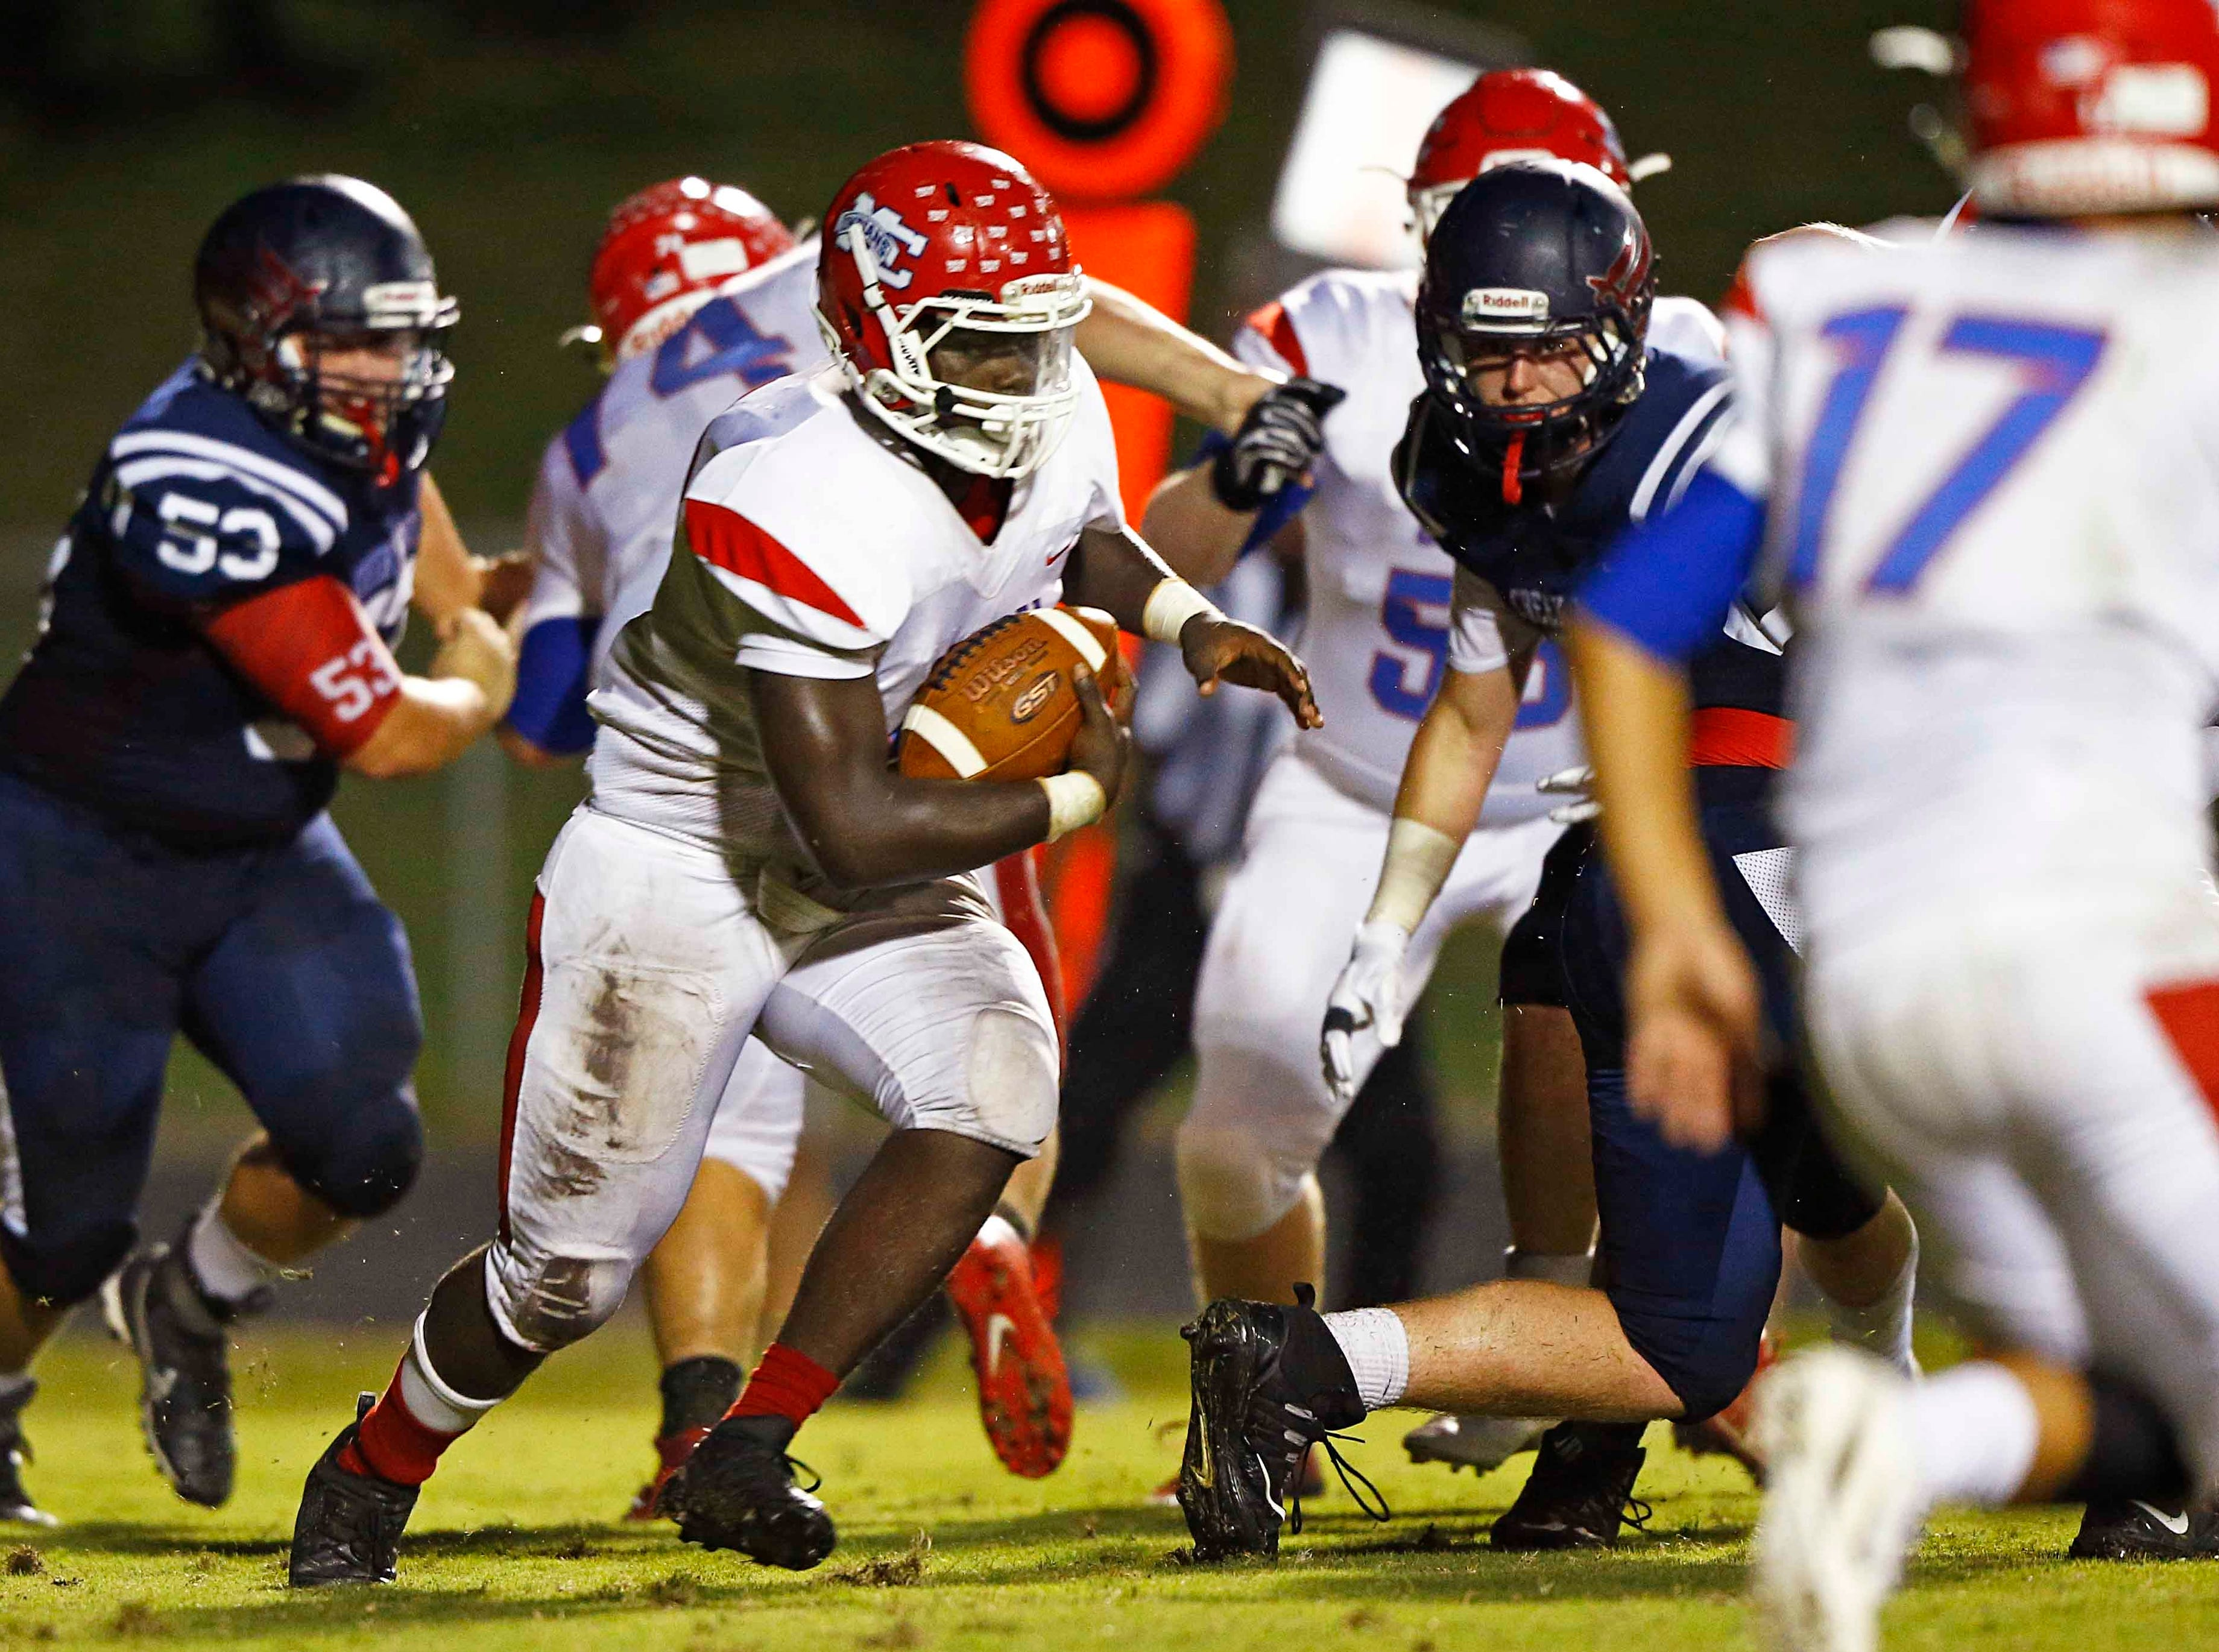 Montgomery Central's Lakendriez Sanders runs for yardage during the game against Creek Wood Friday, Sept. 14, 2018, in Charlotte, Tenn.